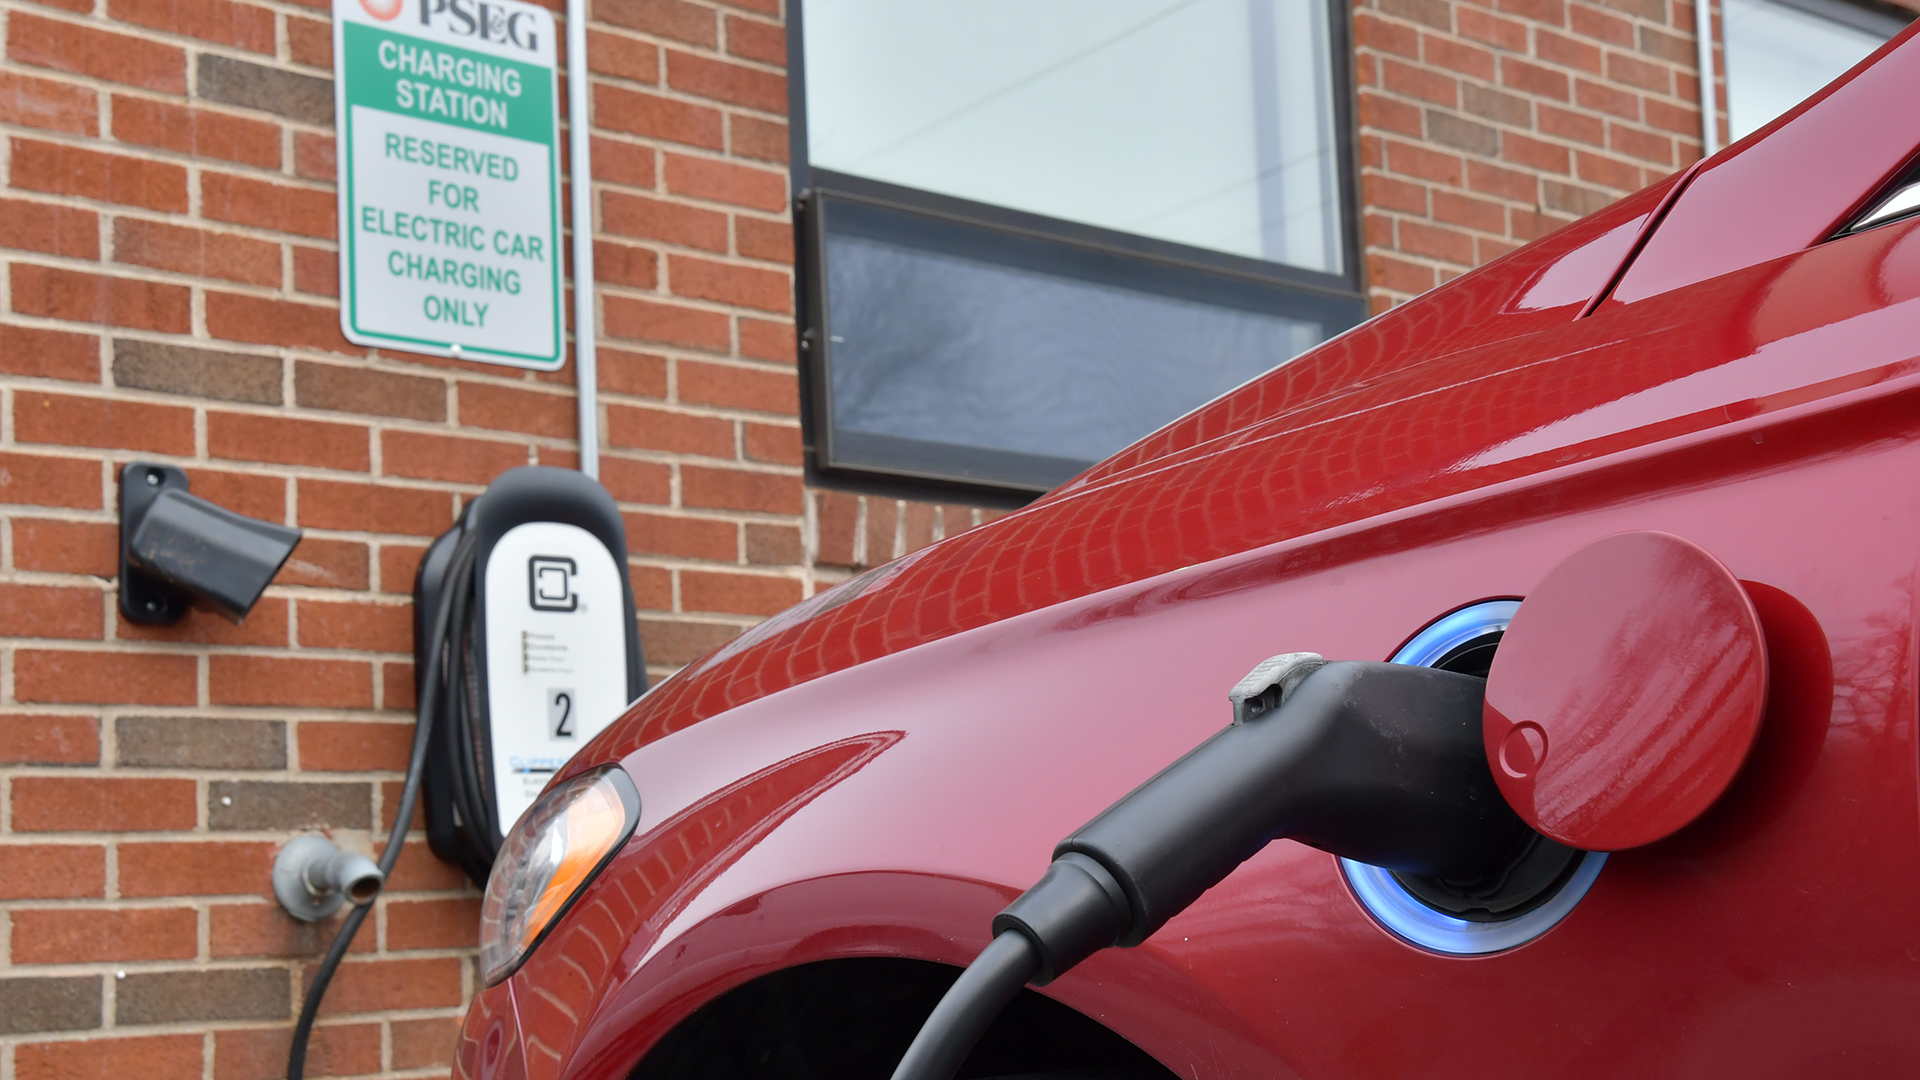 Rider's electric vehicle charging station